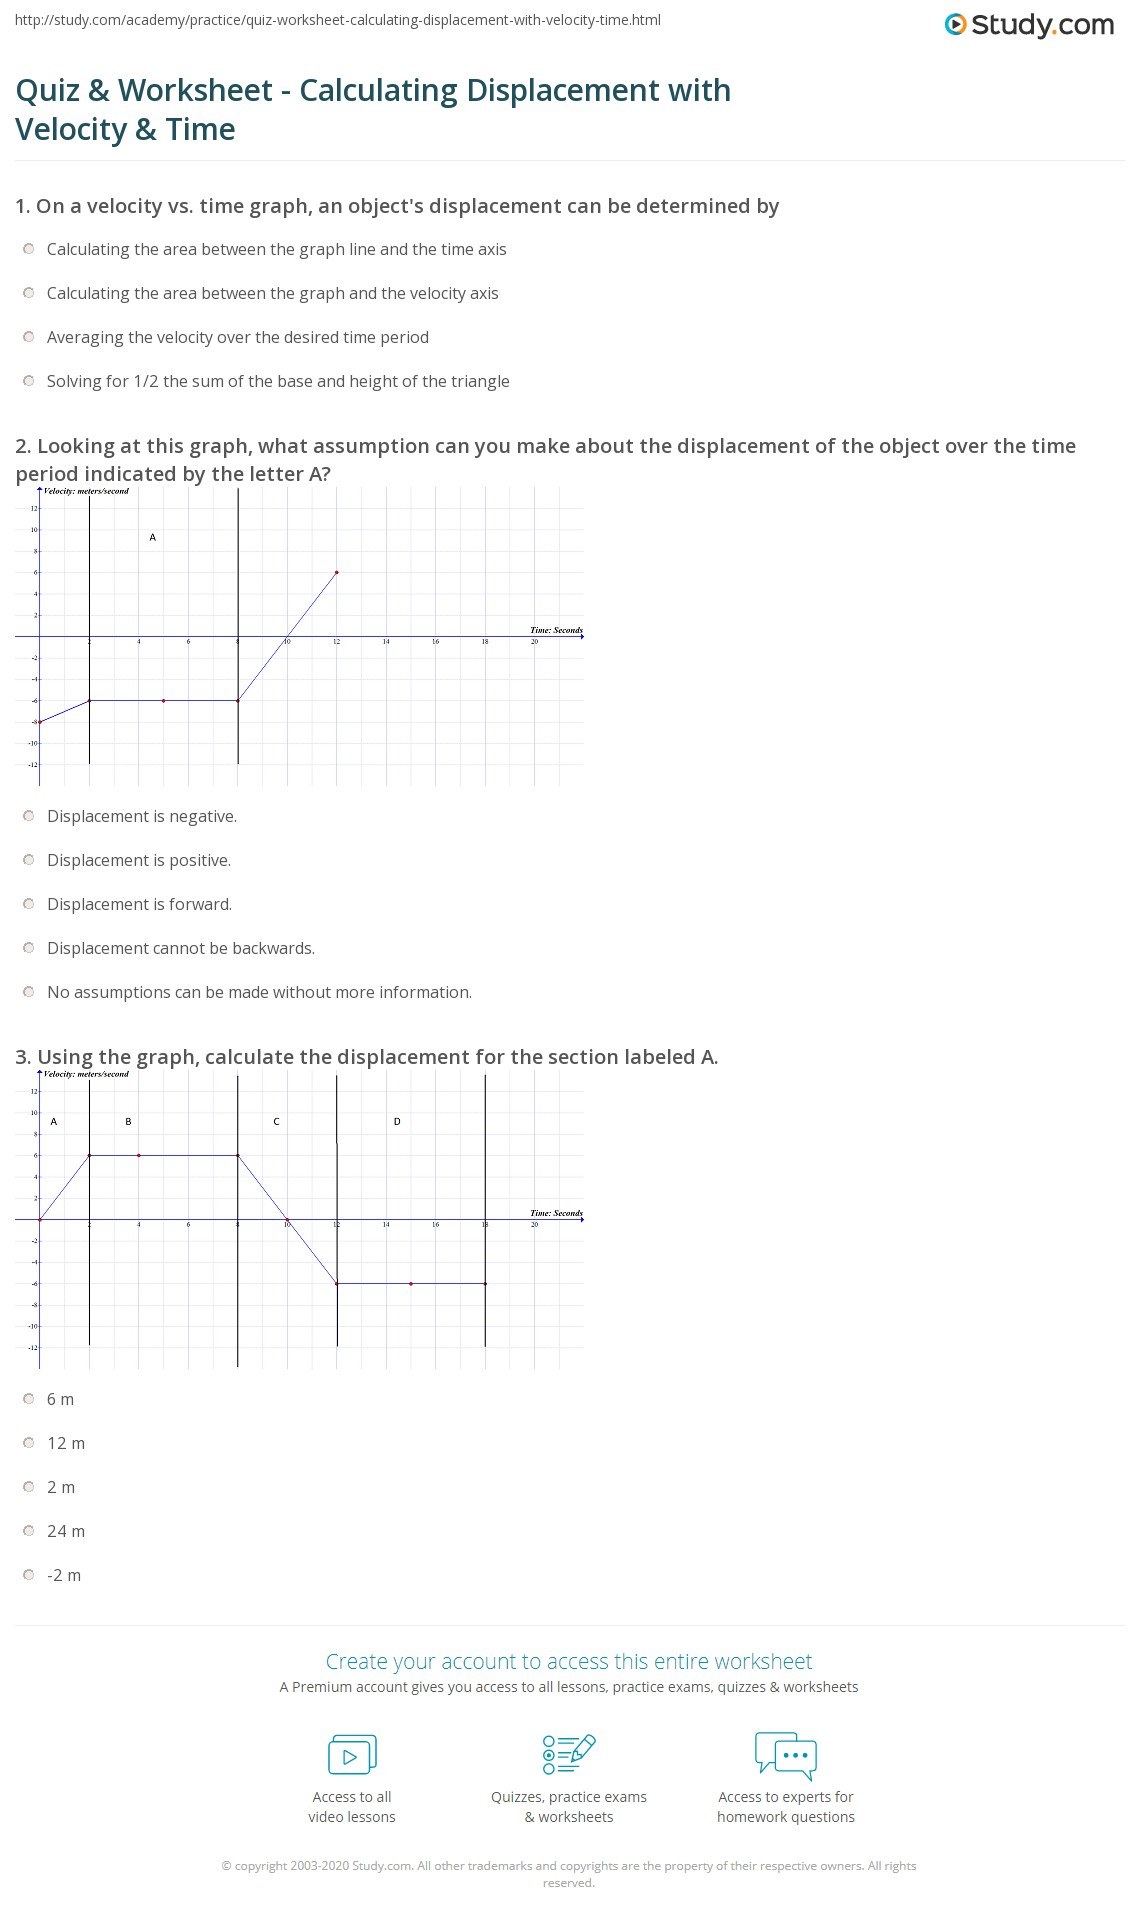 worksheet Velocity Worksheet 3 1 Answers quiz worksheet calculating displacement with velocity time print vs determining of an object worksheet